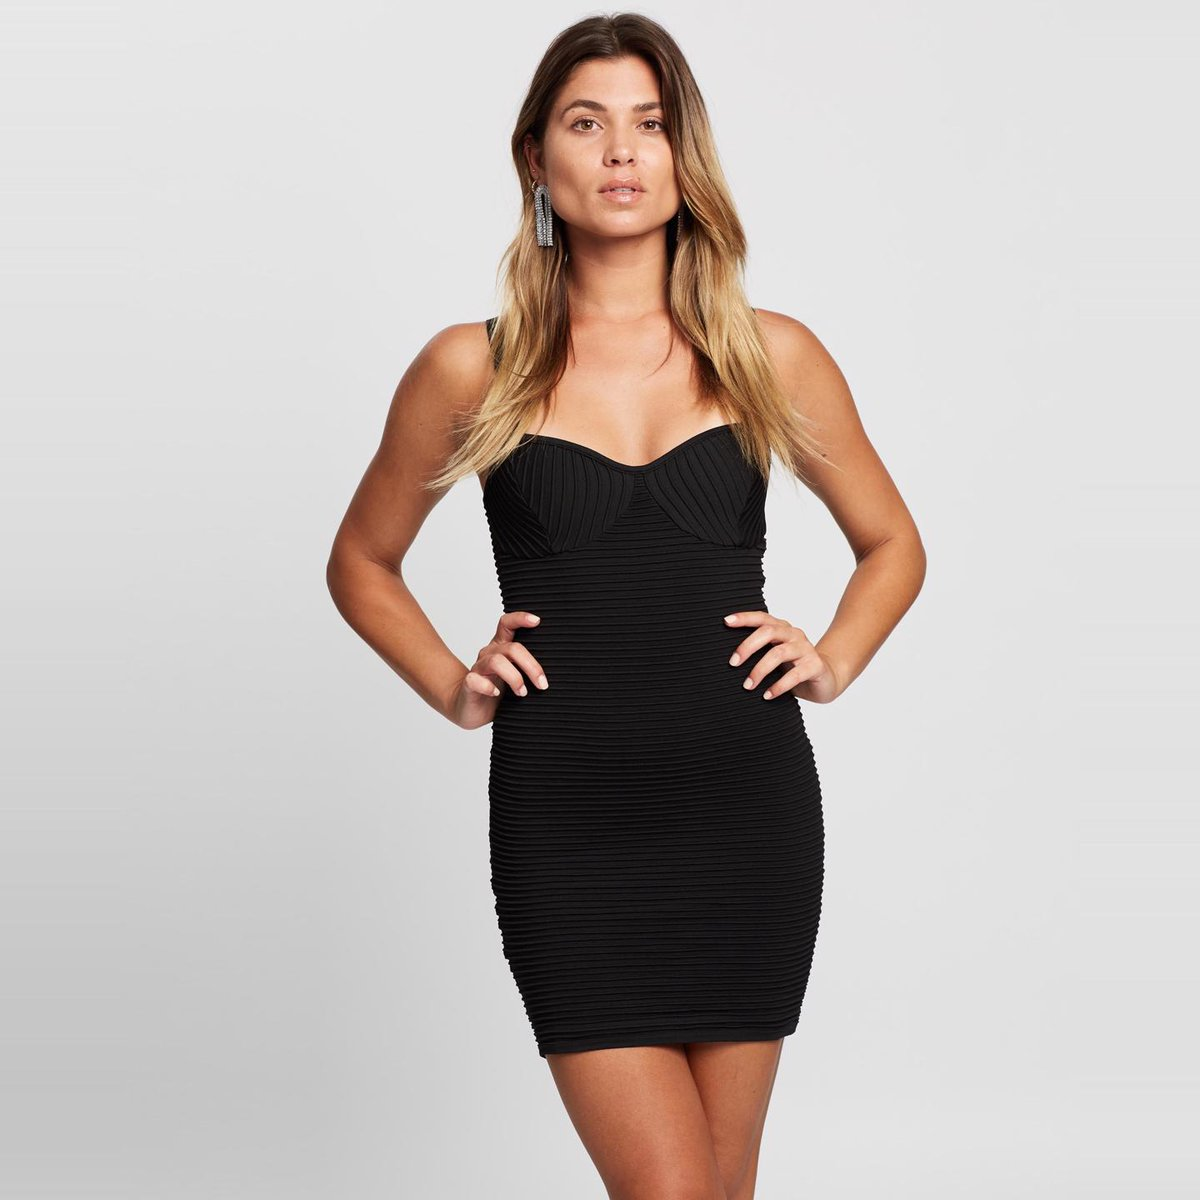 M.N.G - Kendall Dress - $99.95  #mng #dresses